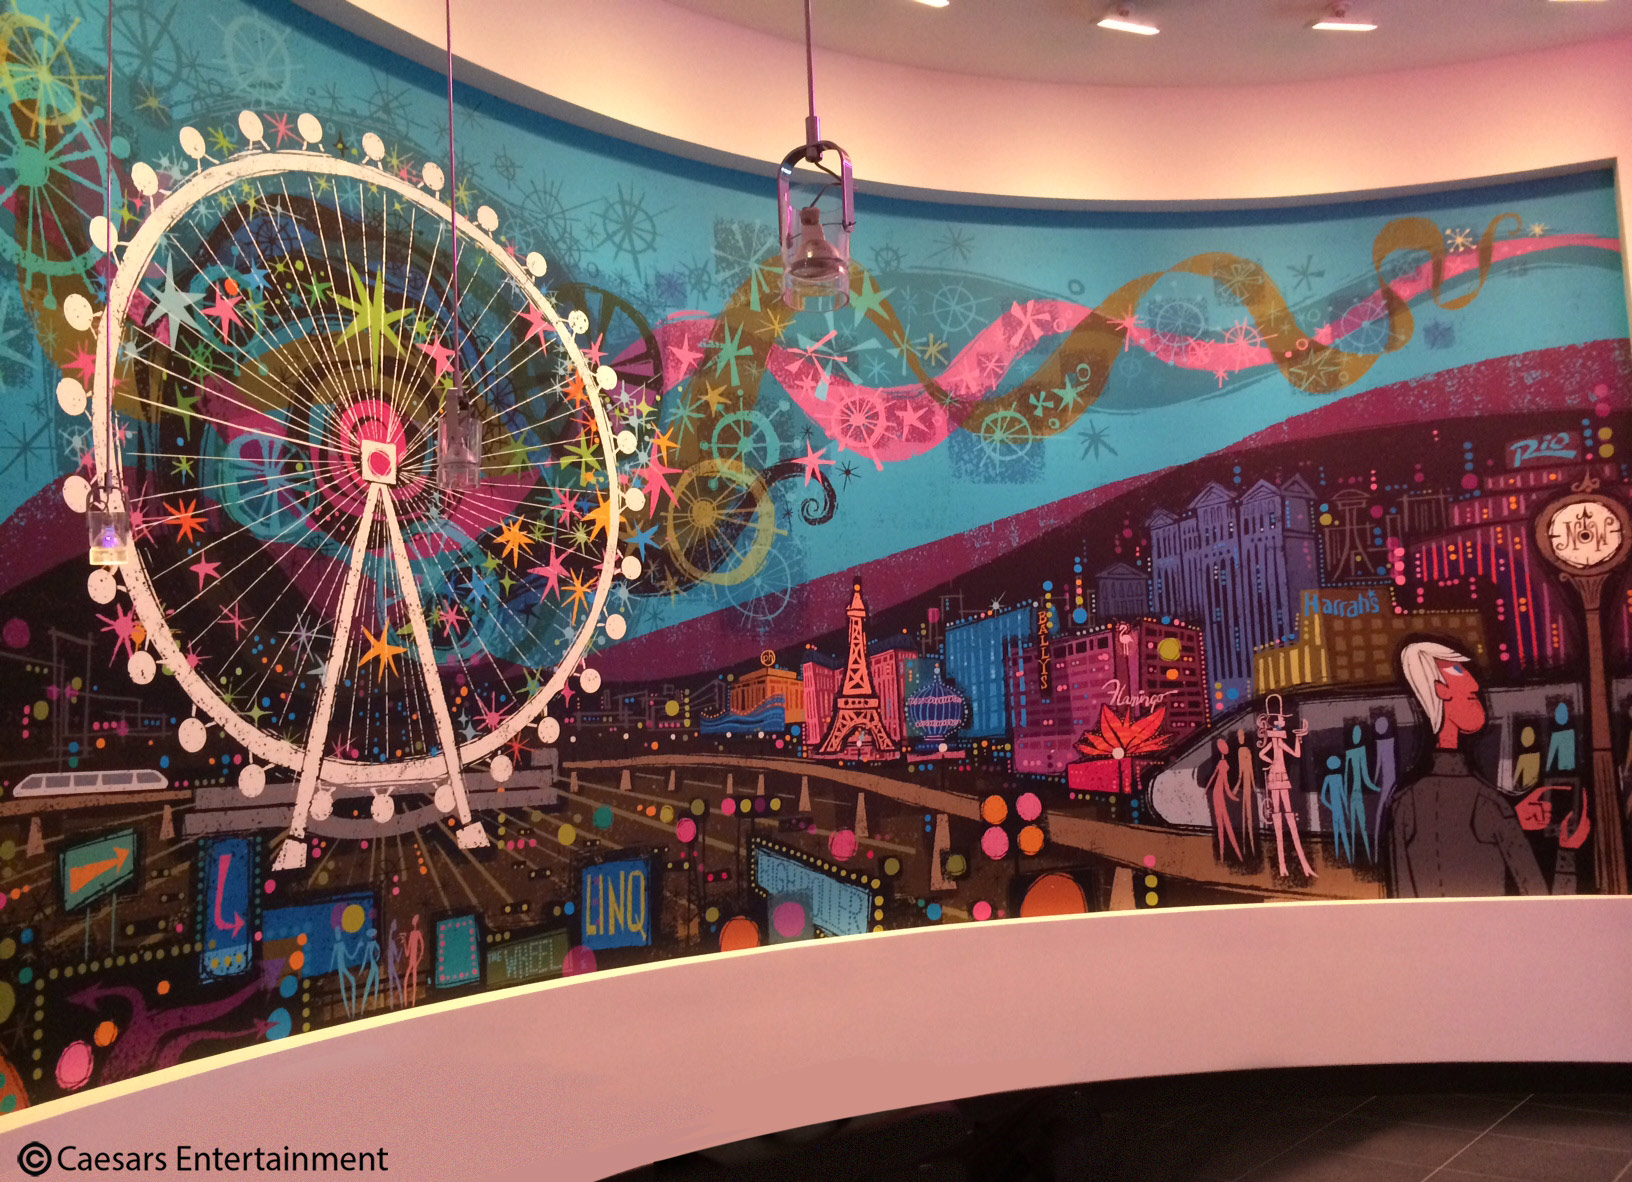 One of seven murals by Reccardi at the Linq Hotel's High Roller observation wheel in Las Vegas.